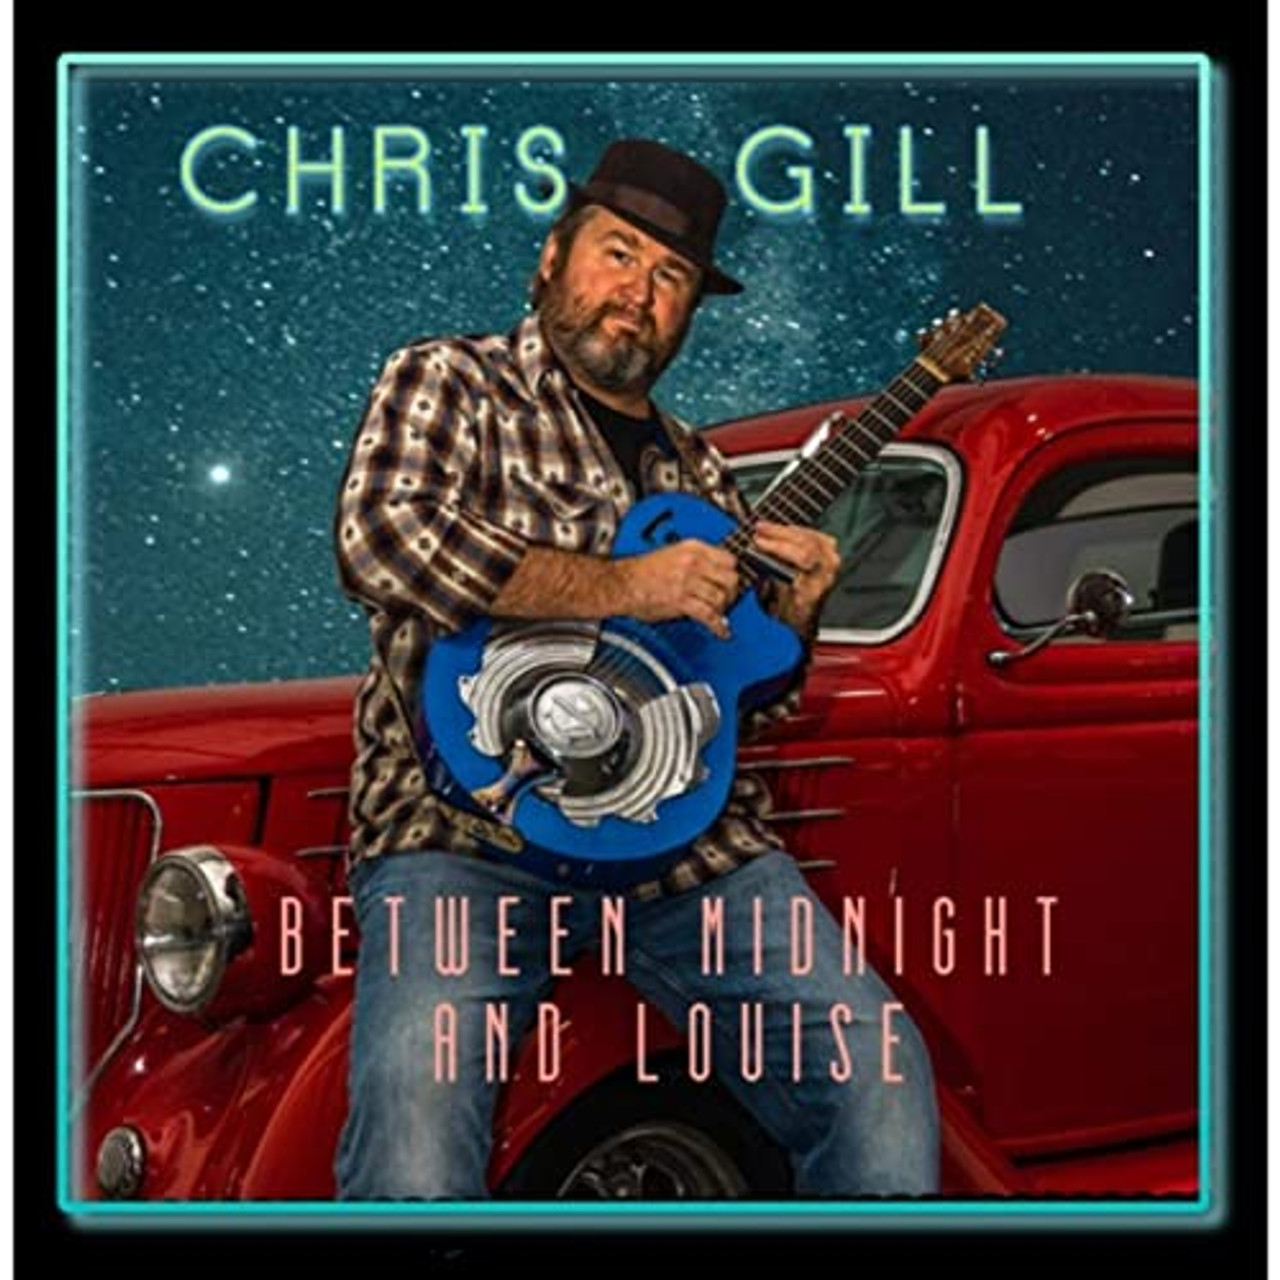 CHRIS GILL - BETWEEN MIDNIGHT AND LOUISE